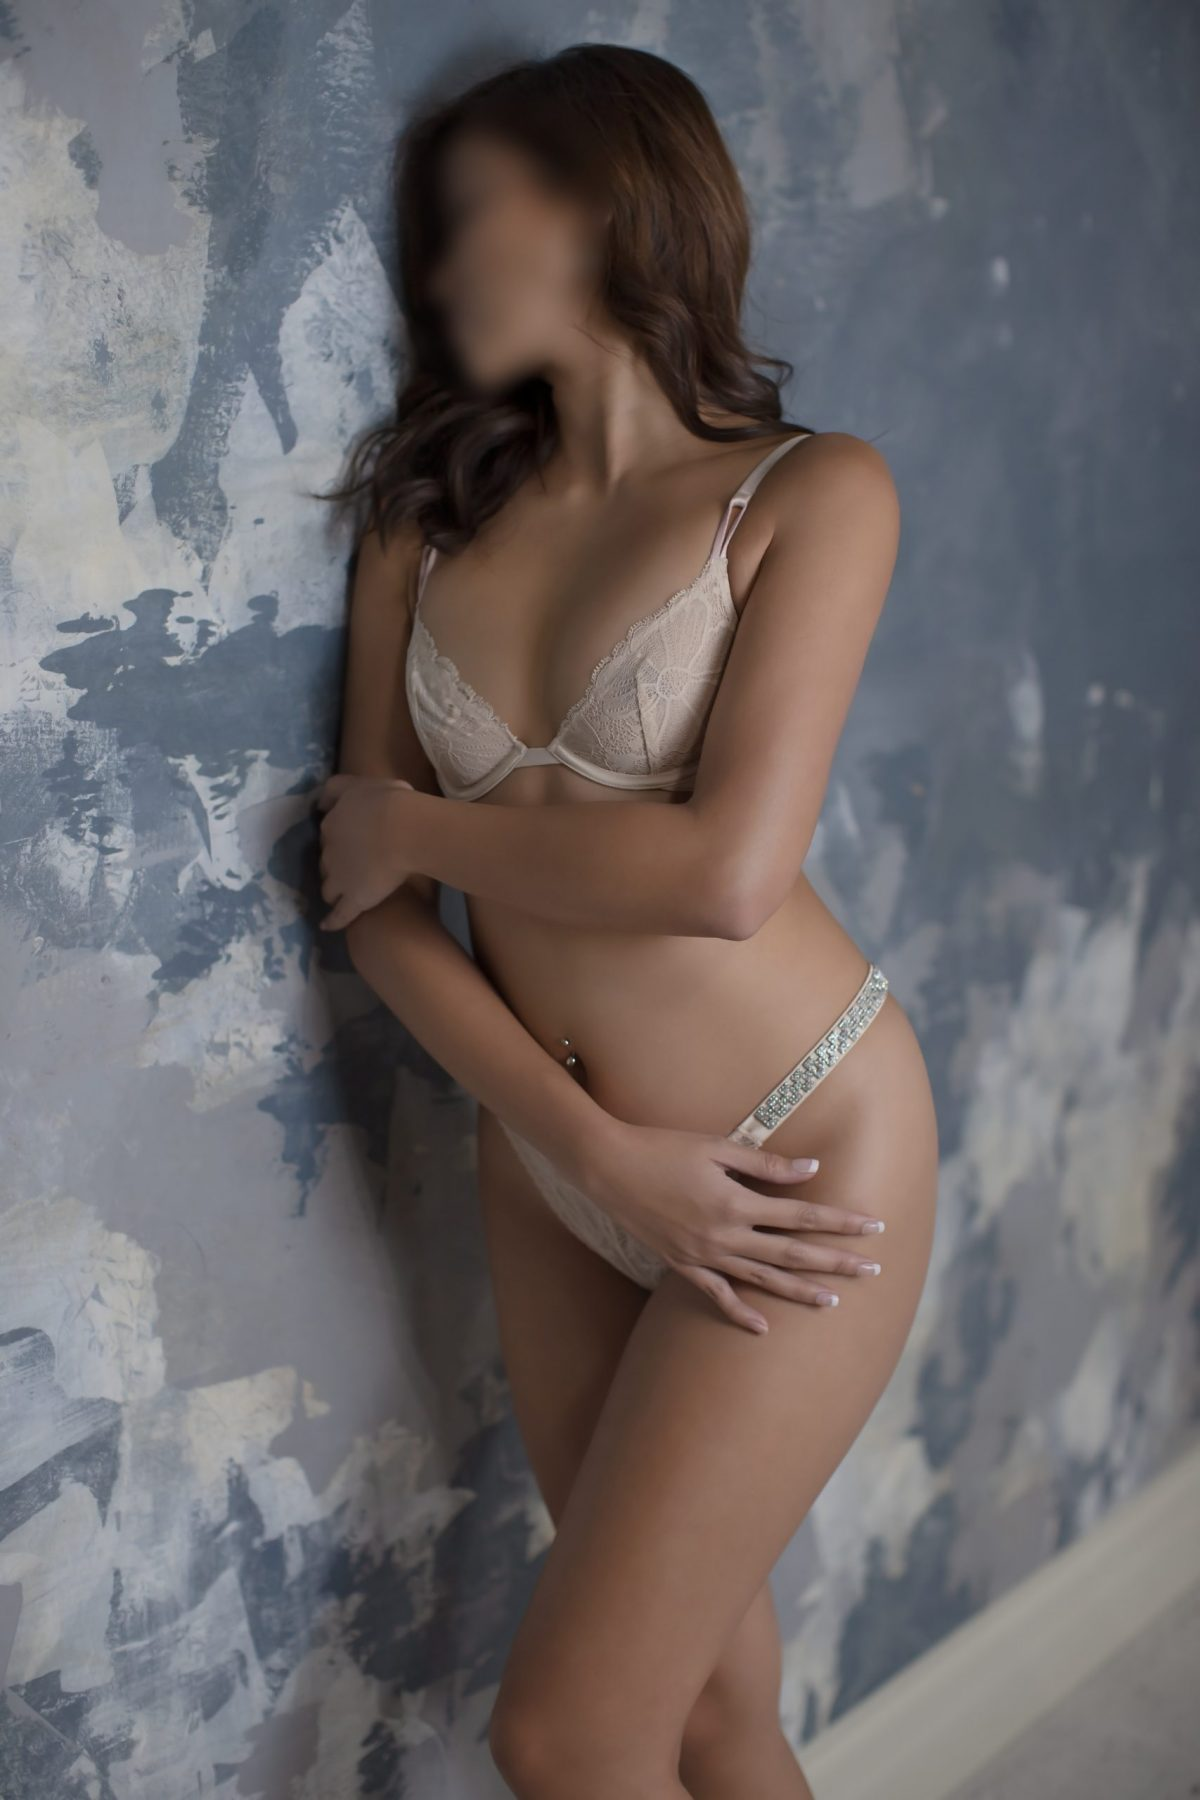 Toronto escorts companion upscale Carlisle Duo Non-smoking Mature Slender Petite Breasts Natural Raven-Haired Asian Tattoos None